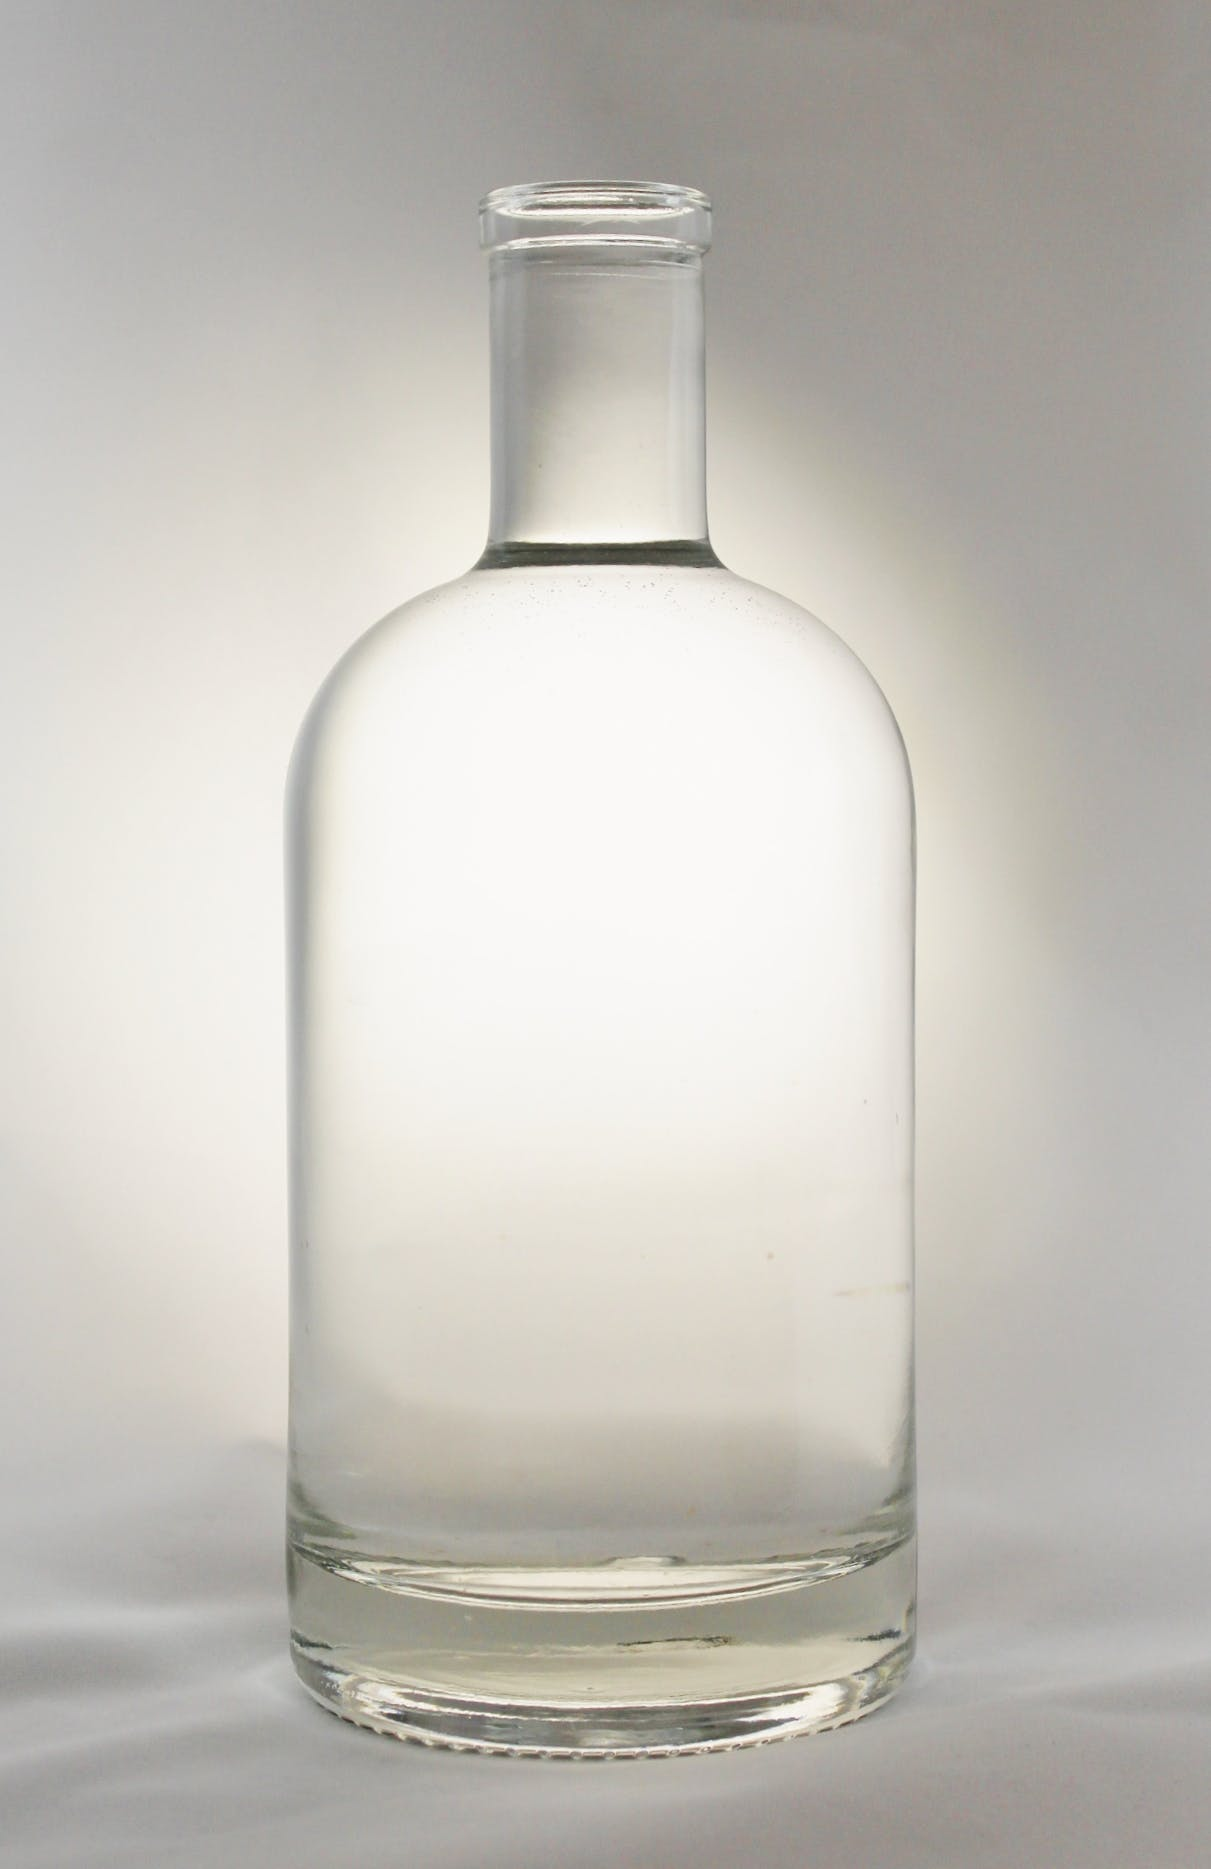 750 ml Nordic Round Bar Top Liquor bottle sold by Wm. R. Hill & Company